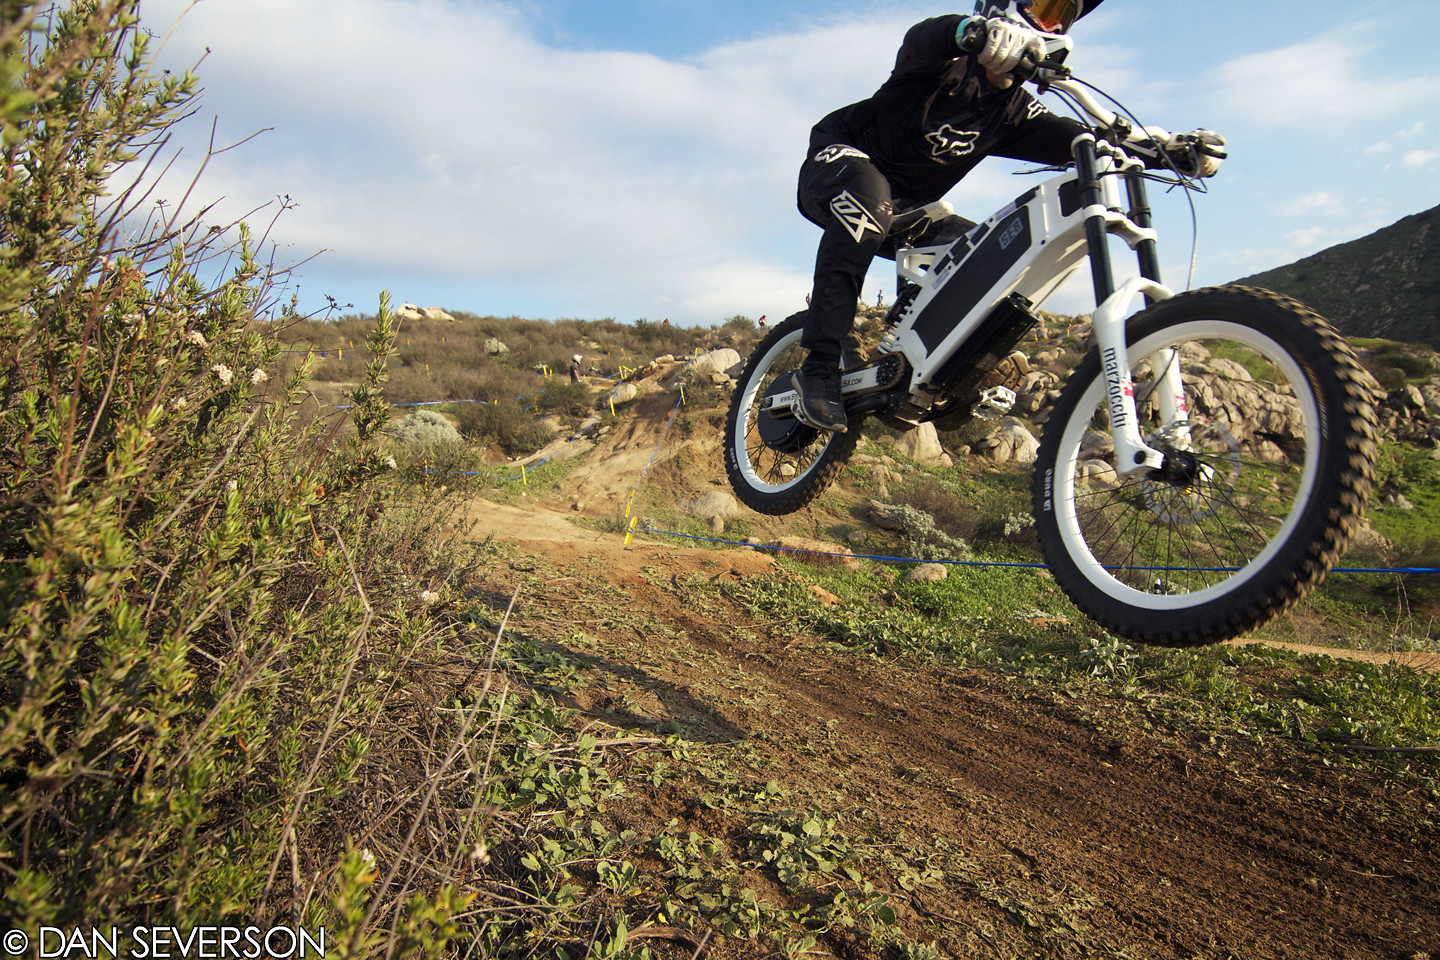 DH / Moto Hybrid? - danseverson photo - Mountain Biking Pictures - Vital MTB